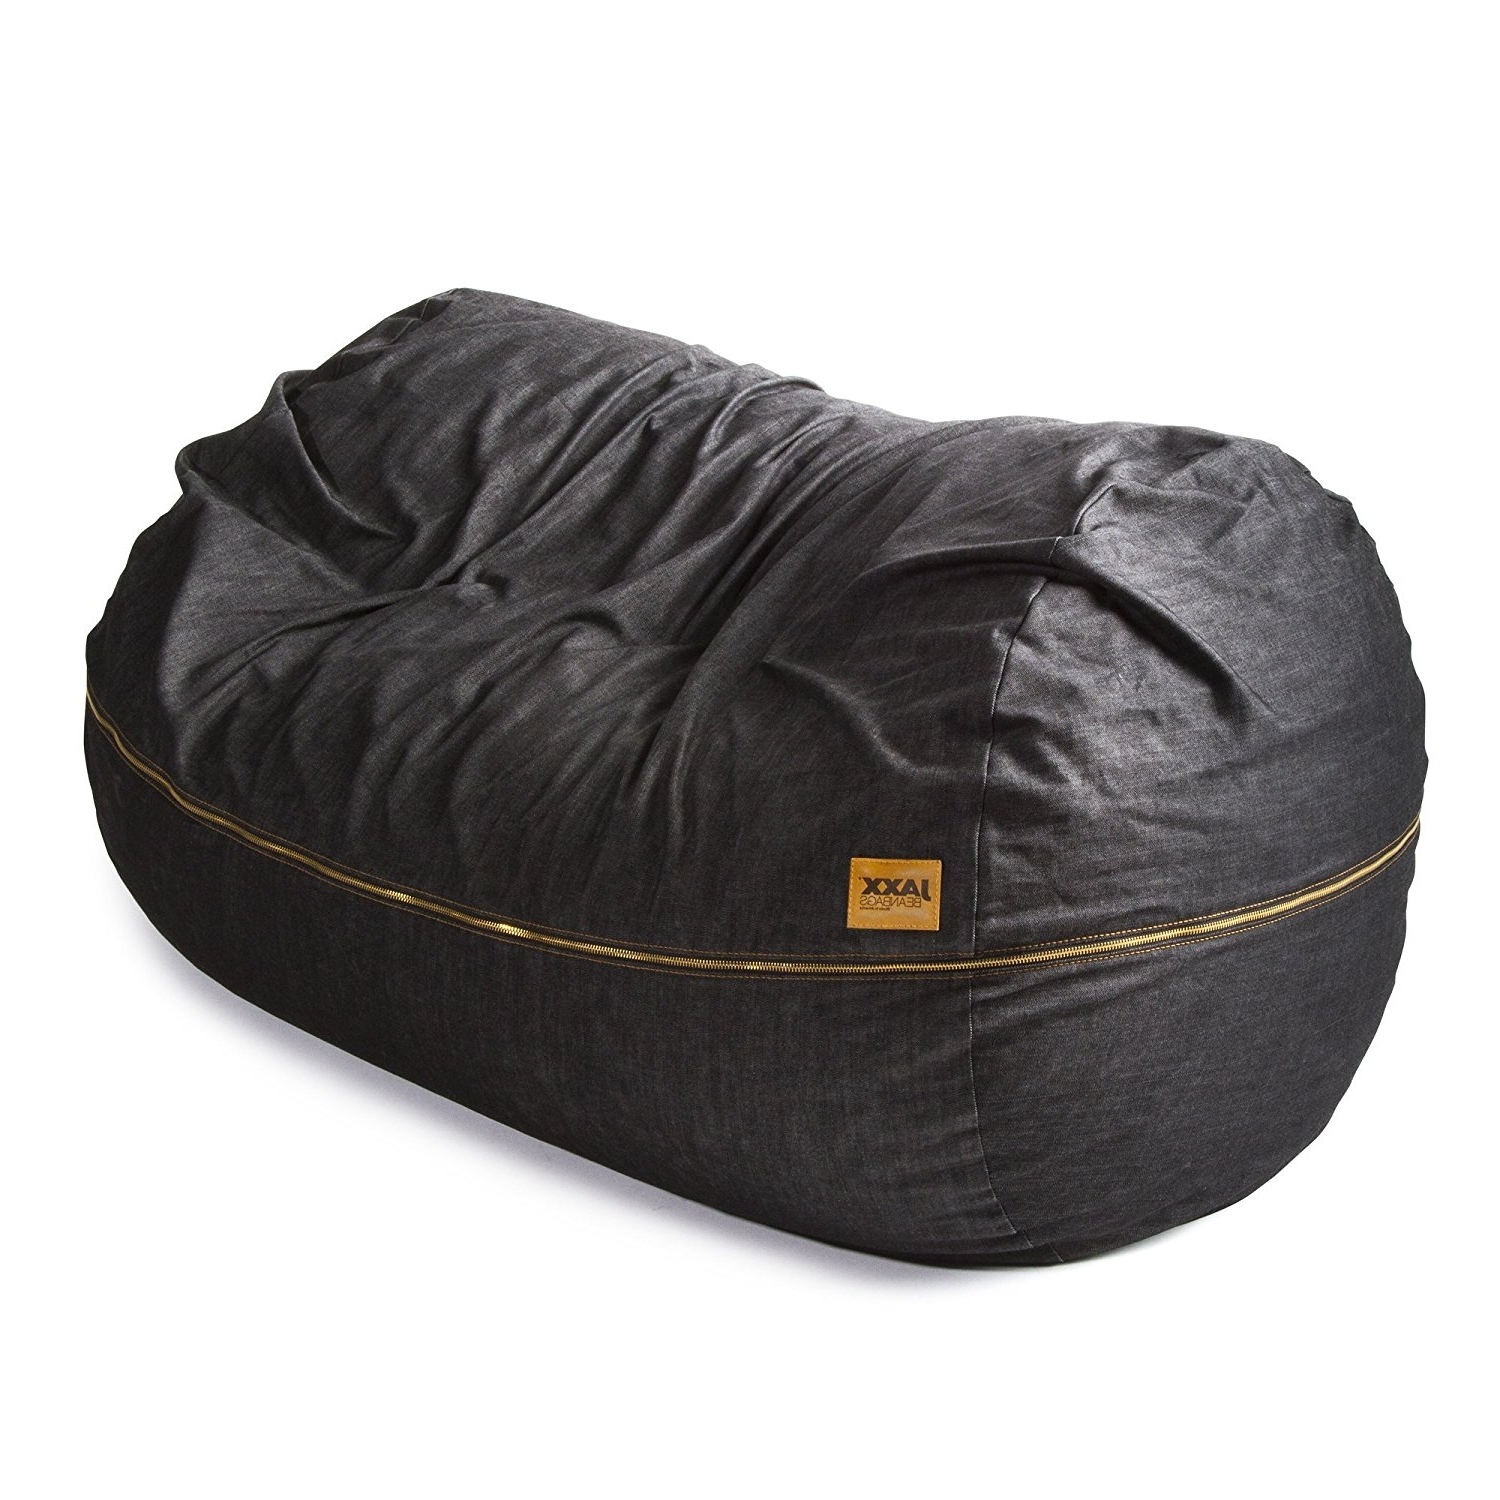 Most Recently Released Bean Bag Sofas Within Bean Bag Sofas – Home And Textiles (View 15 of 20)